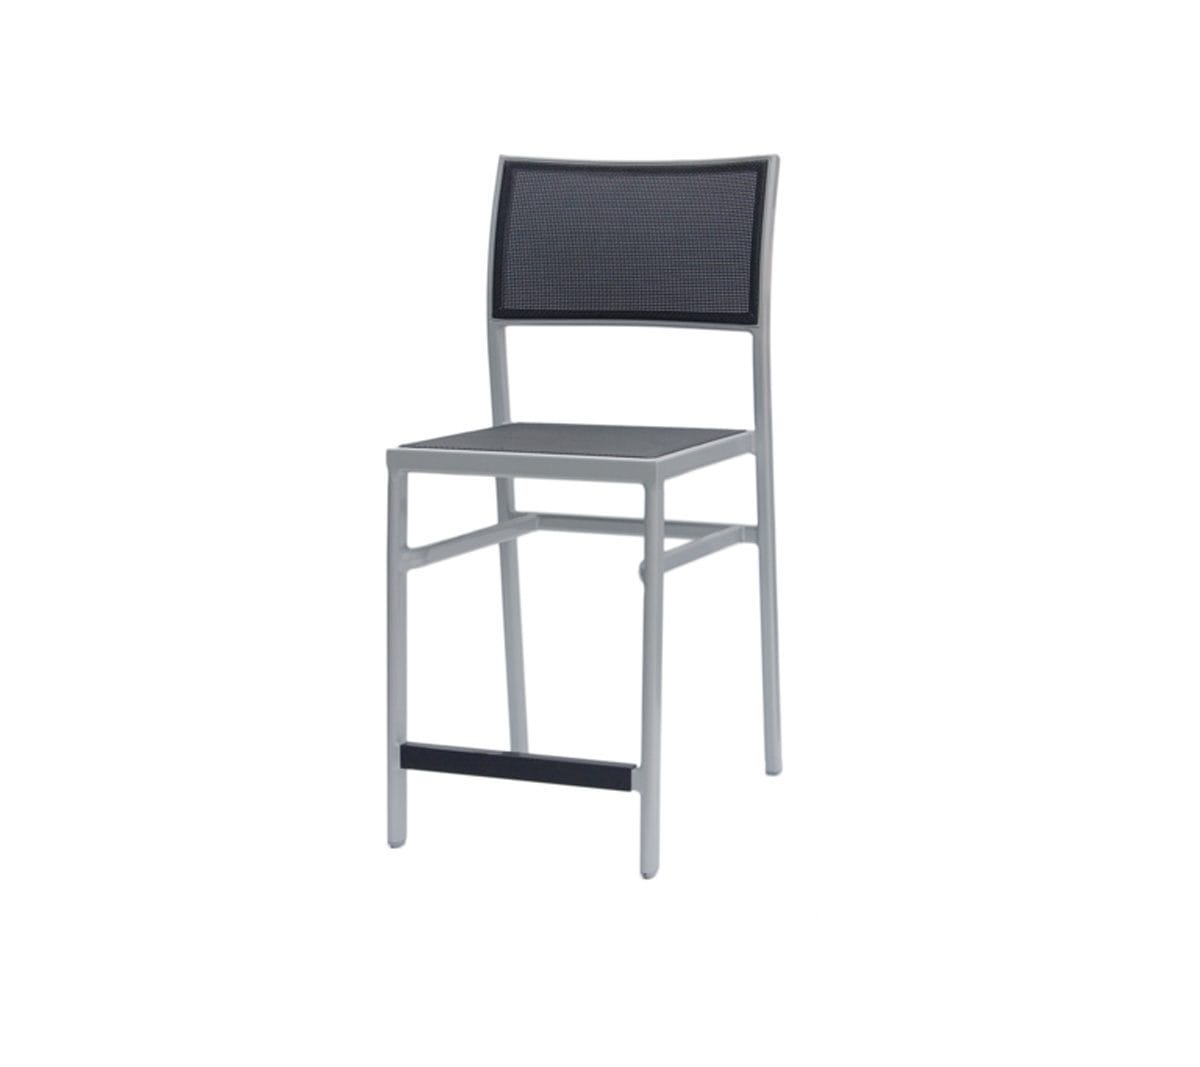 Ratana Counter Chair New Roma Sling Counter Chair w/o Arm